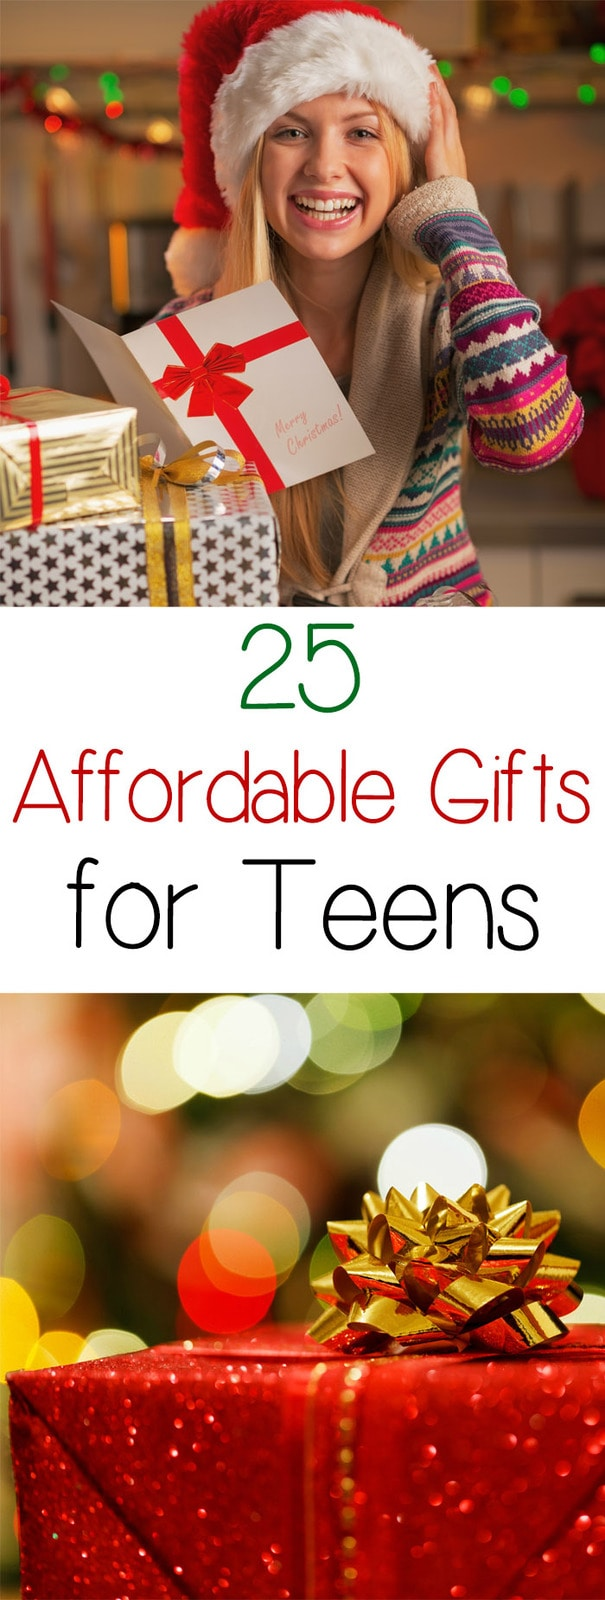 25 Affordable Gifts for Teens - Teens love electronics, but a lot of that stuff is really expensive. So here is a list of affordable gifts that the teens in your life will love!